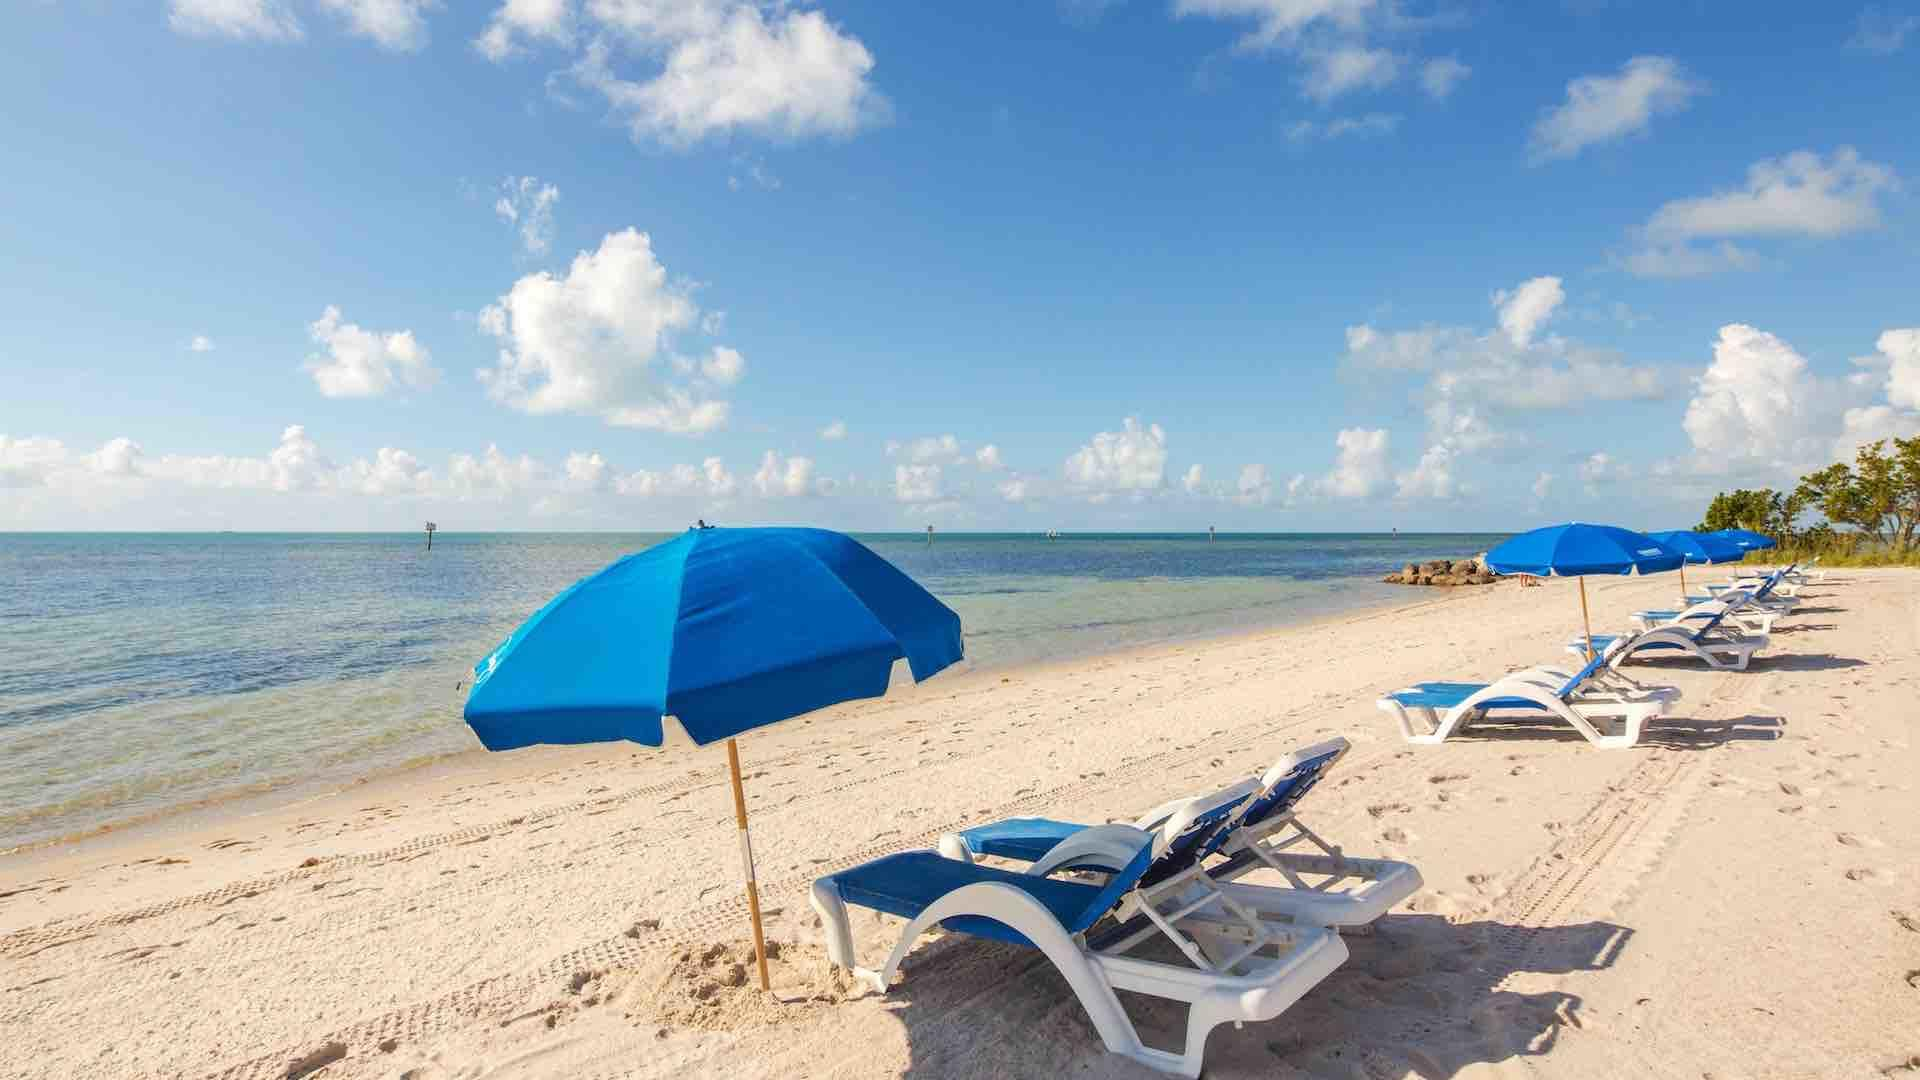 Smathers beach offers chair and umbrella rentals...